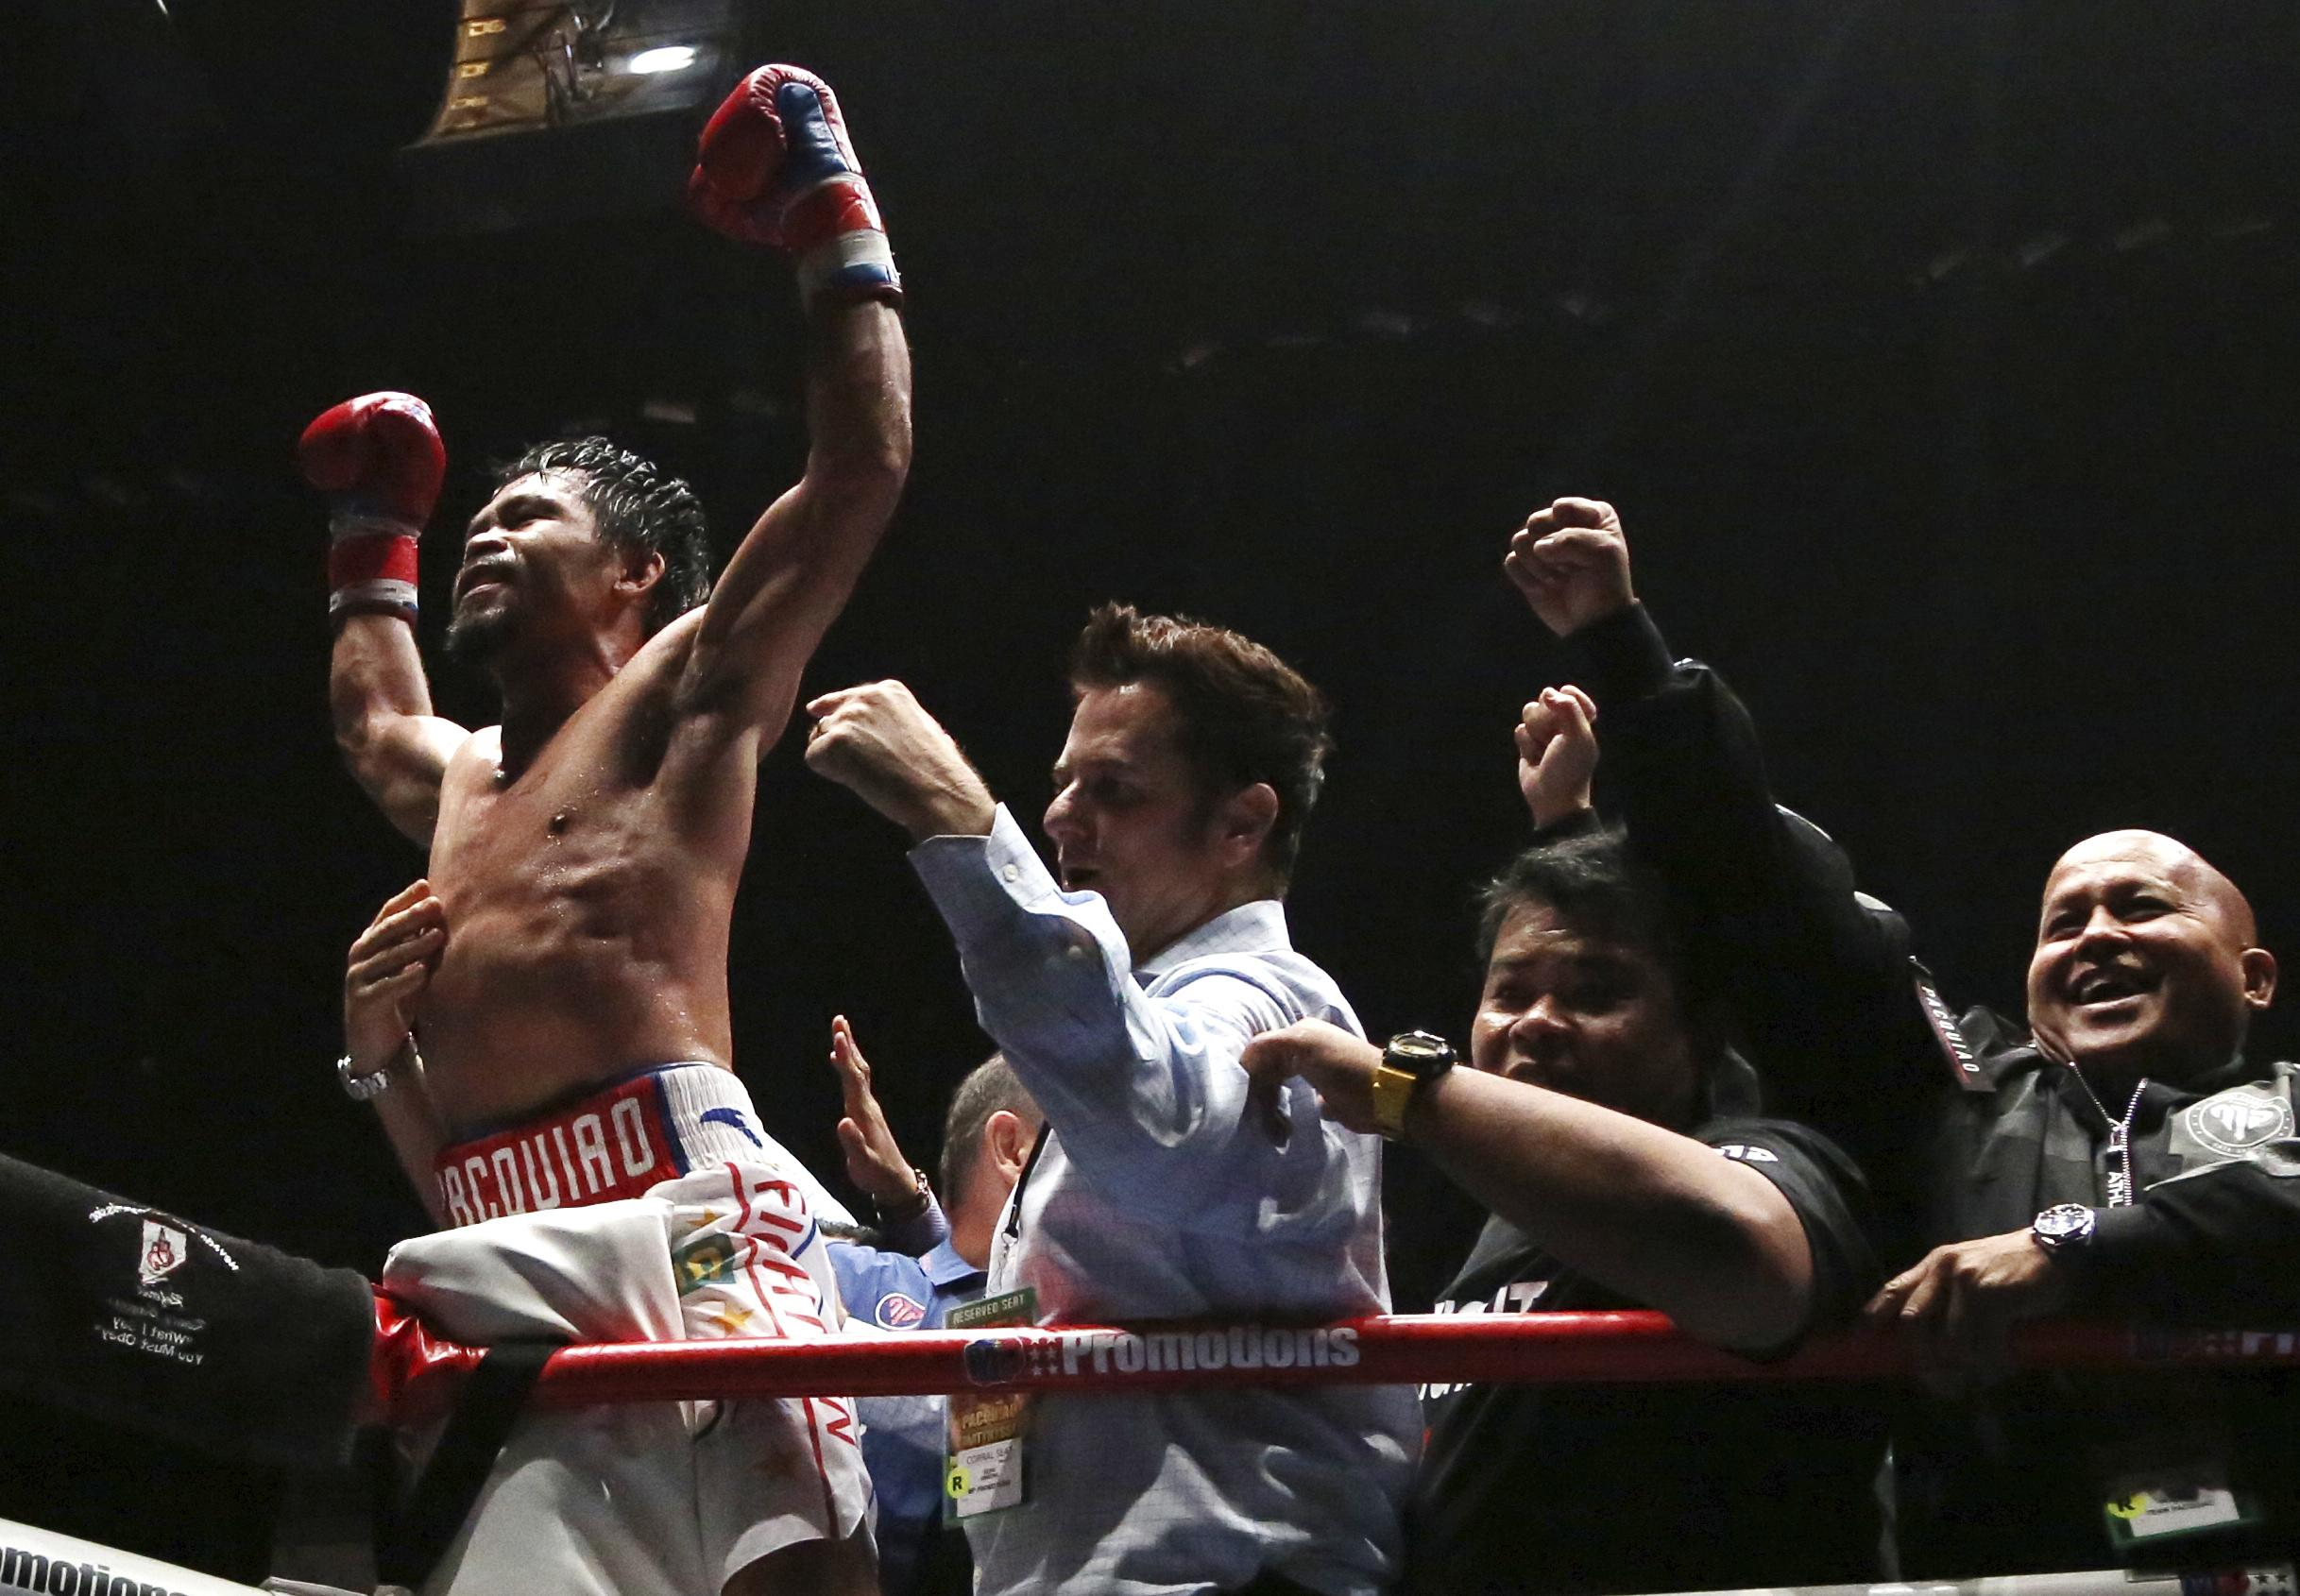 Manny Pacquiao rolled back the years to become an 11-time world champion this weekend